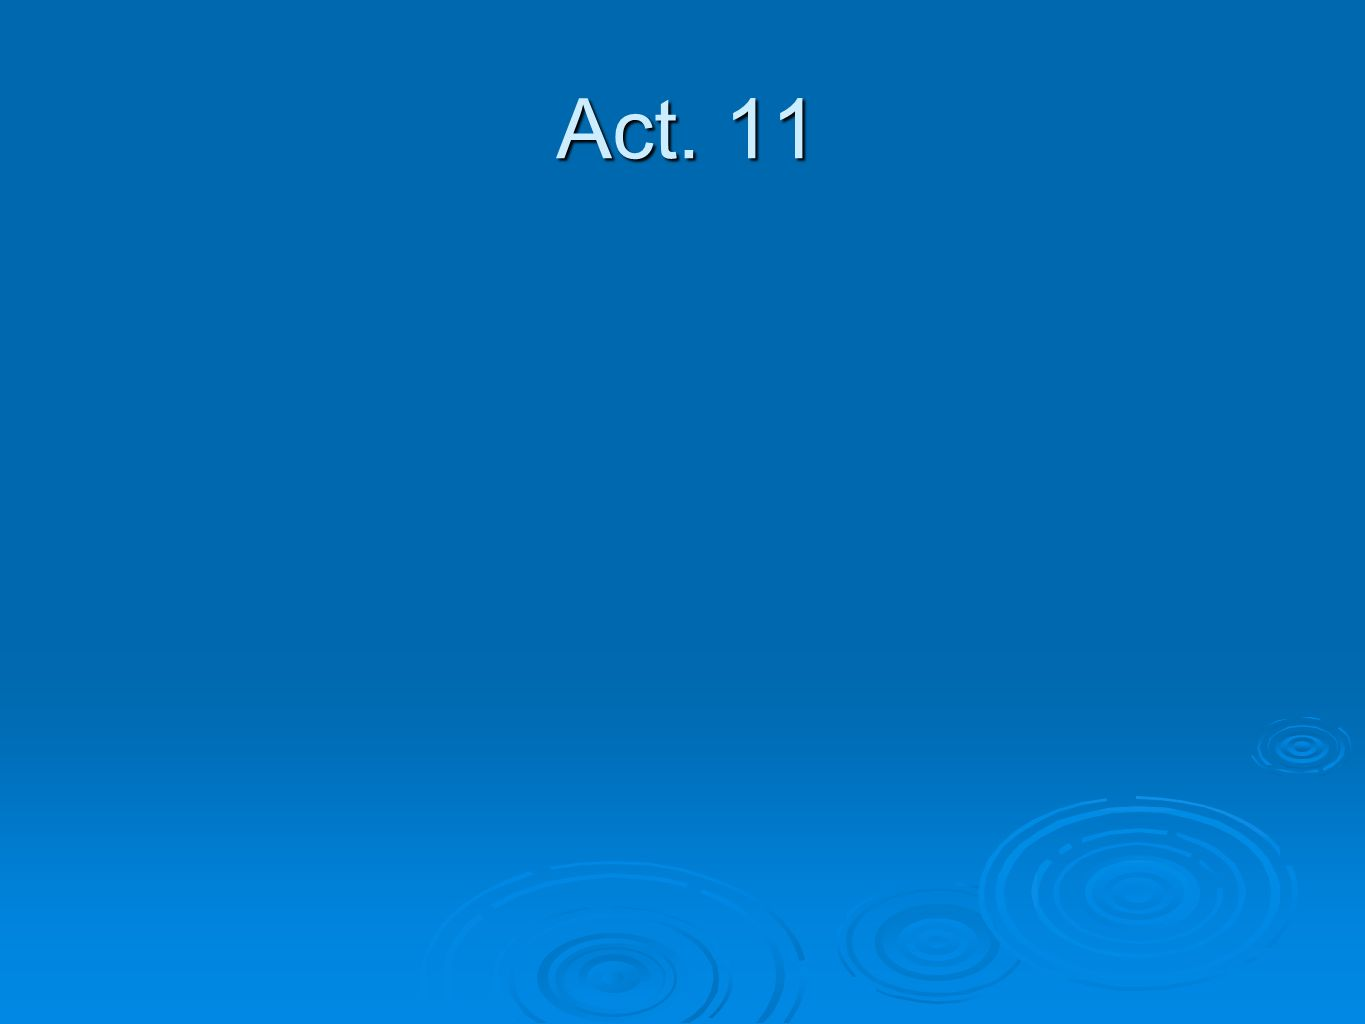 Act. 11